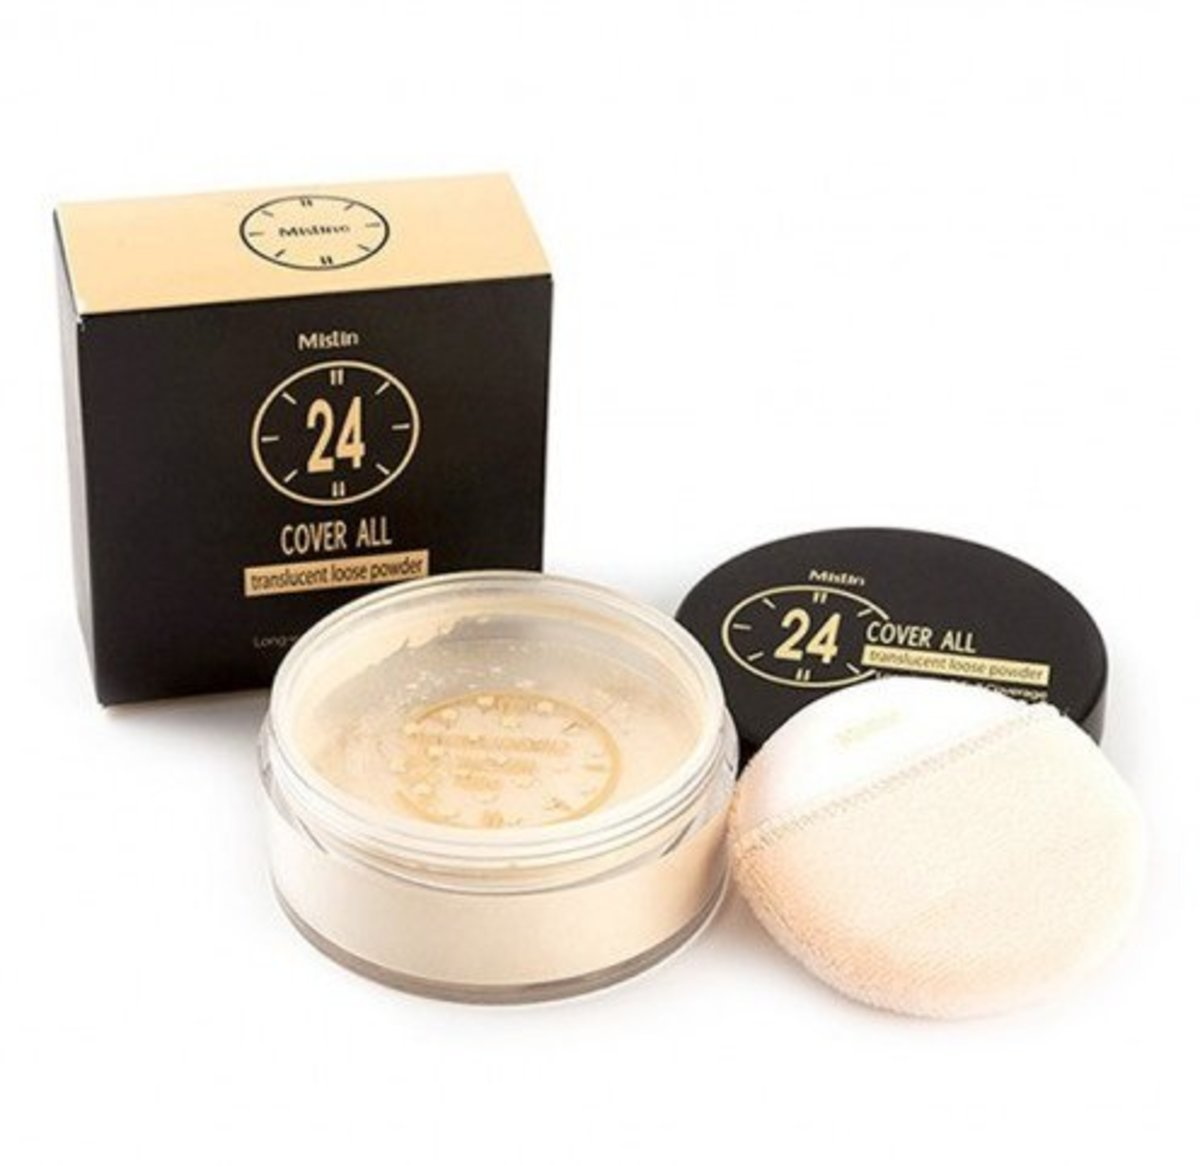 24 cover all translucent loose powder 22g